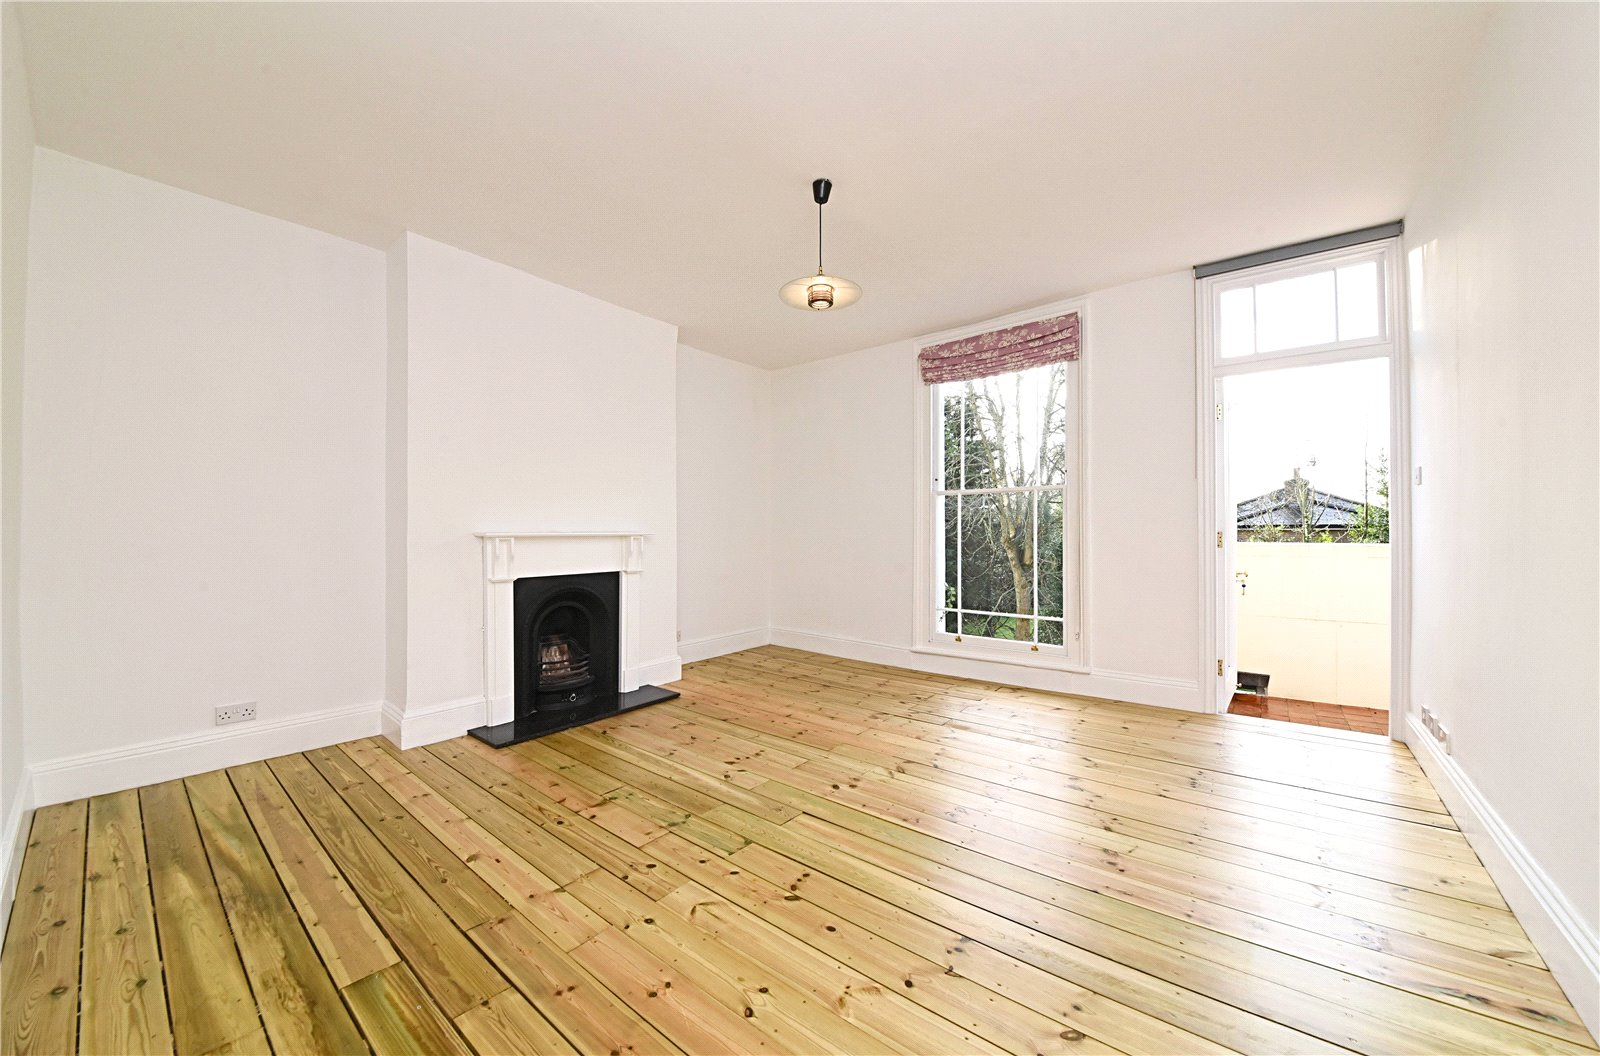 3 bed apartment to rent in Wood Street, High Barnet, EN5